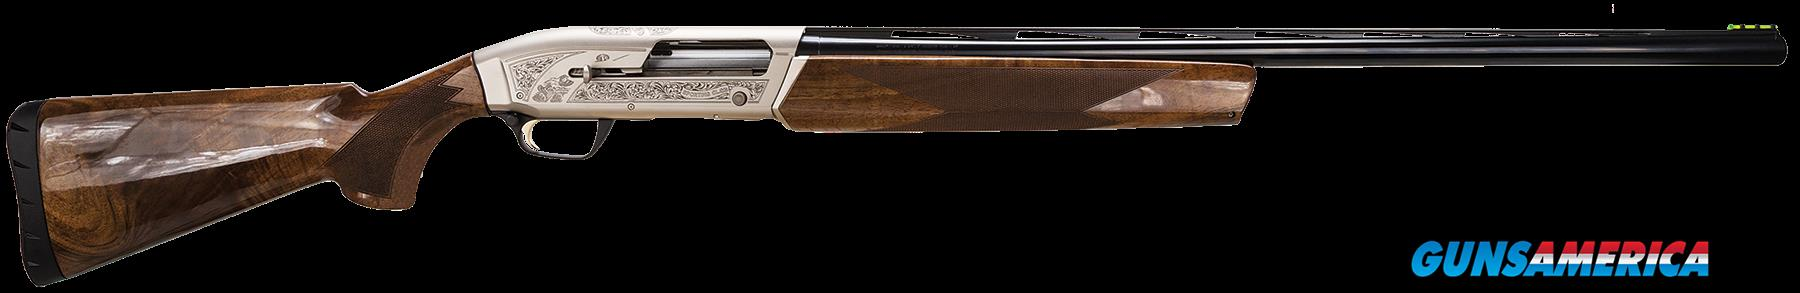 "Browning 011616303 Maxus Semi-Automatic 12 Gauge 30"" 3"" Turkish Walnut Stk Nickeled Aluminum Alloy  Guns > Shotguns > B Misc Shotguns"